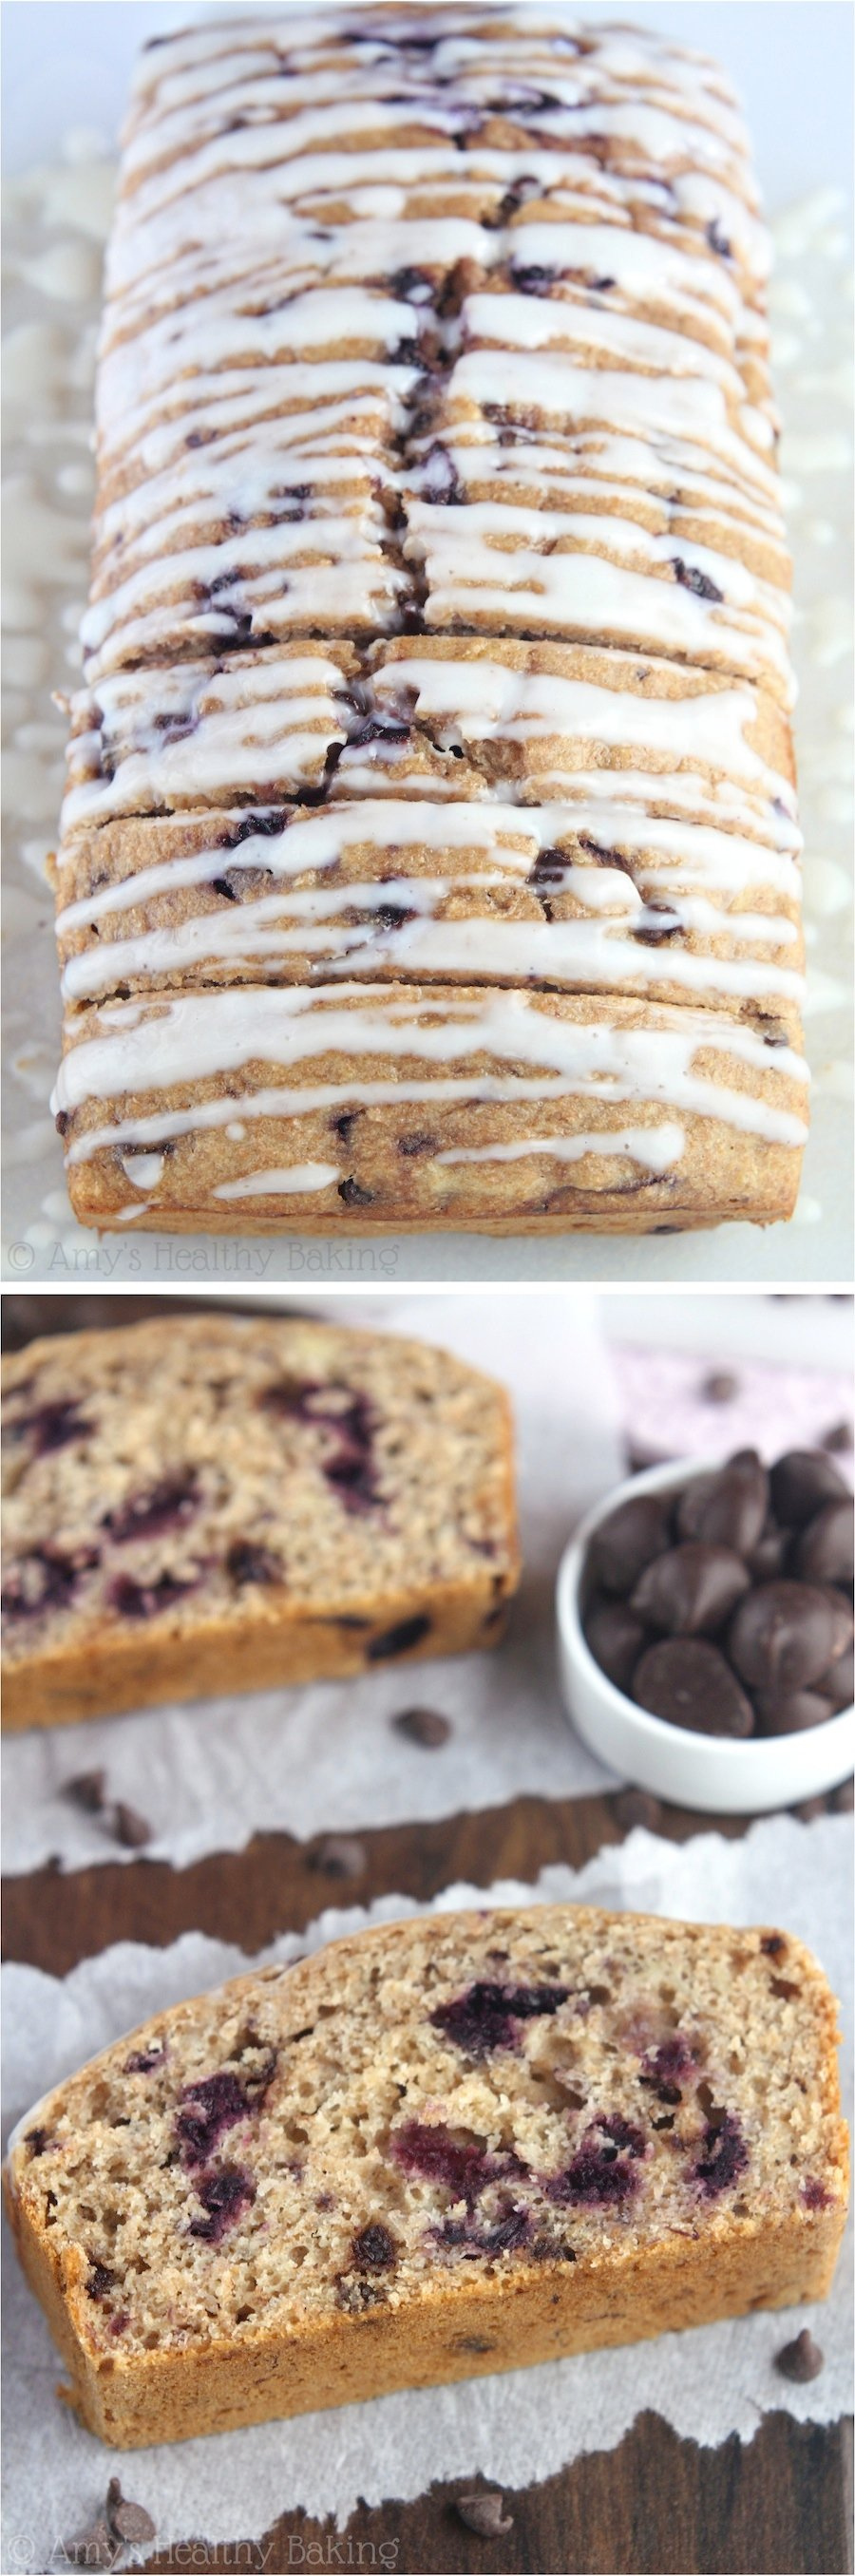 Healthy Banana Split Banana Bread